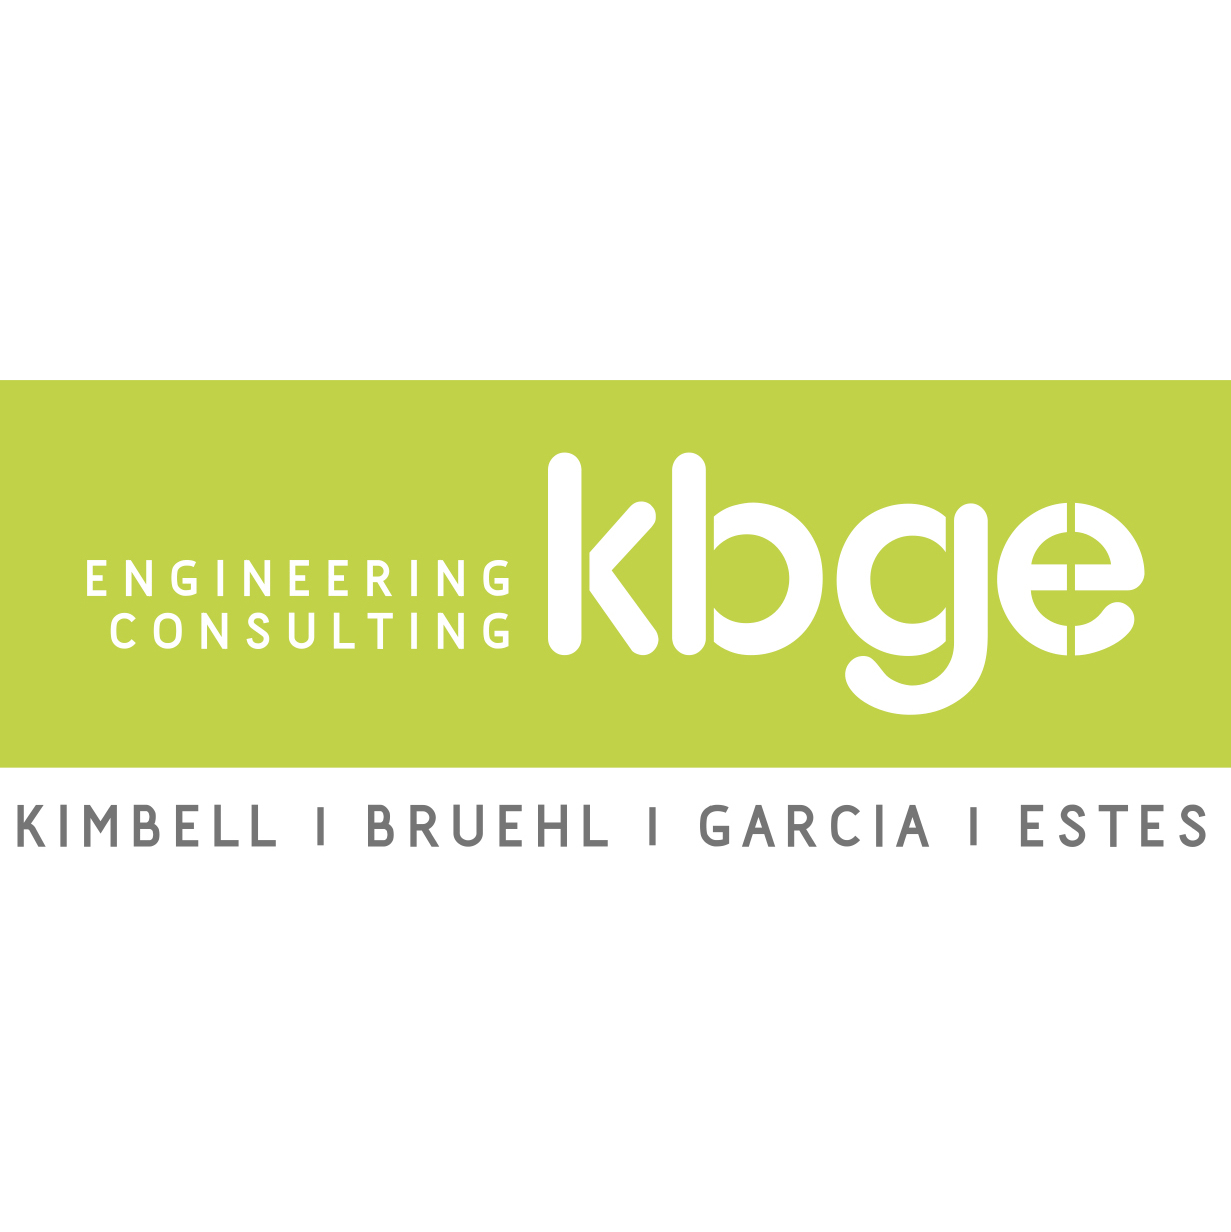 kbge_logo_high res copy_157